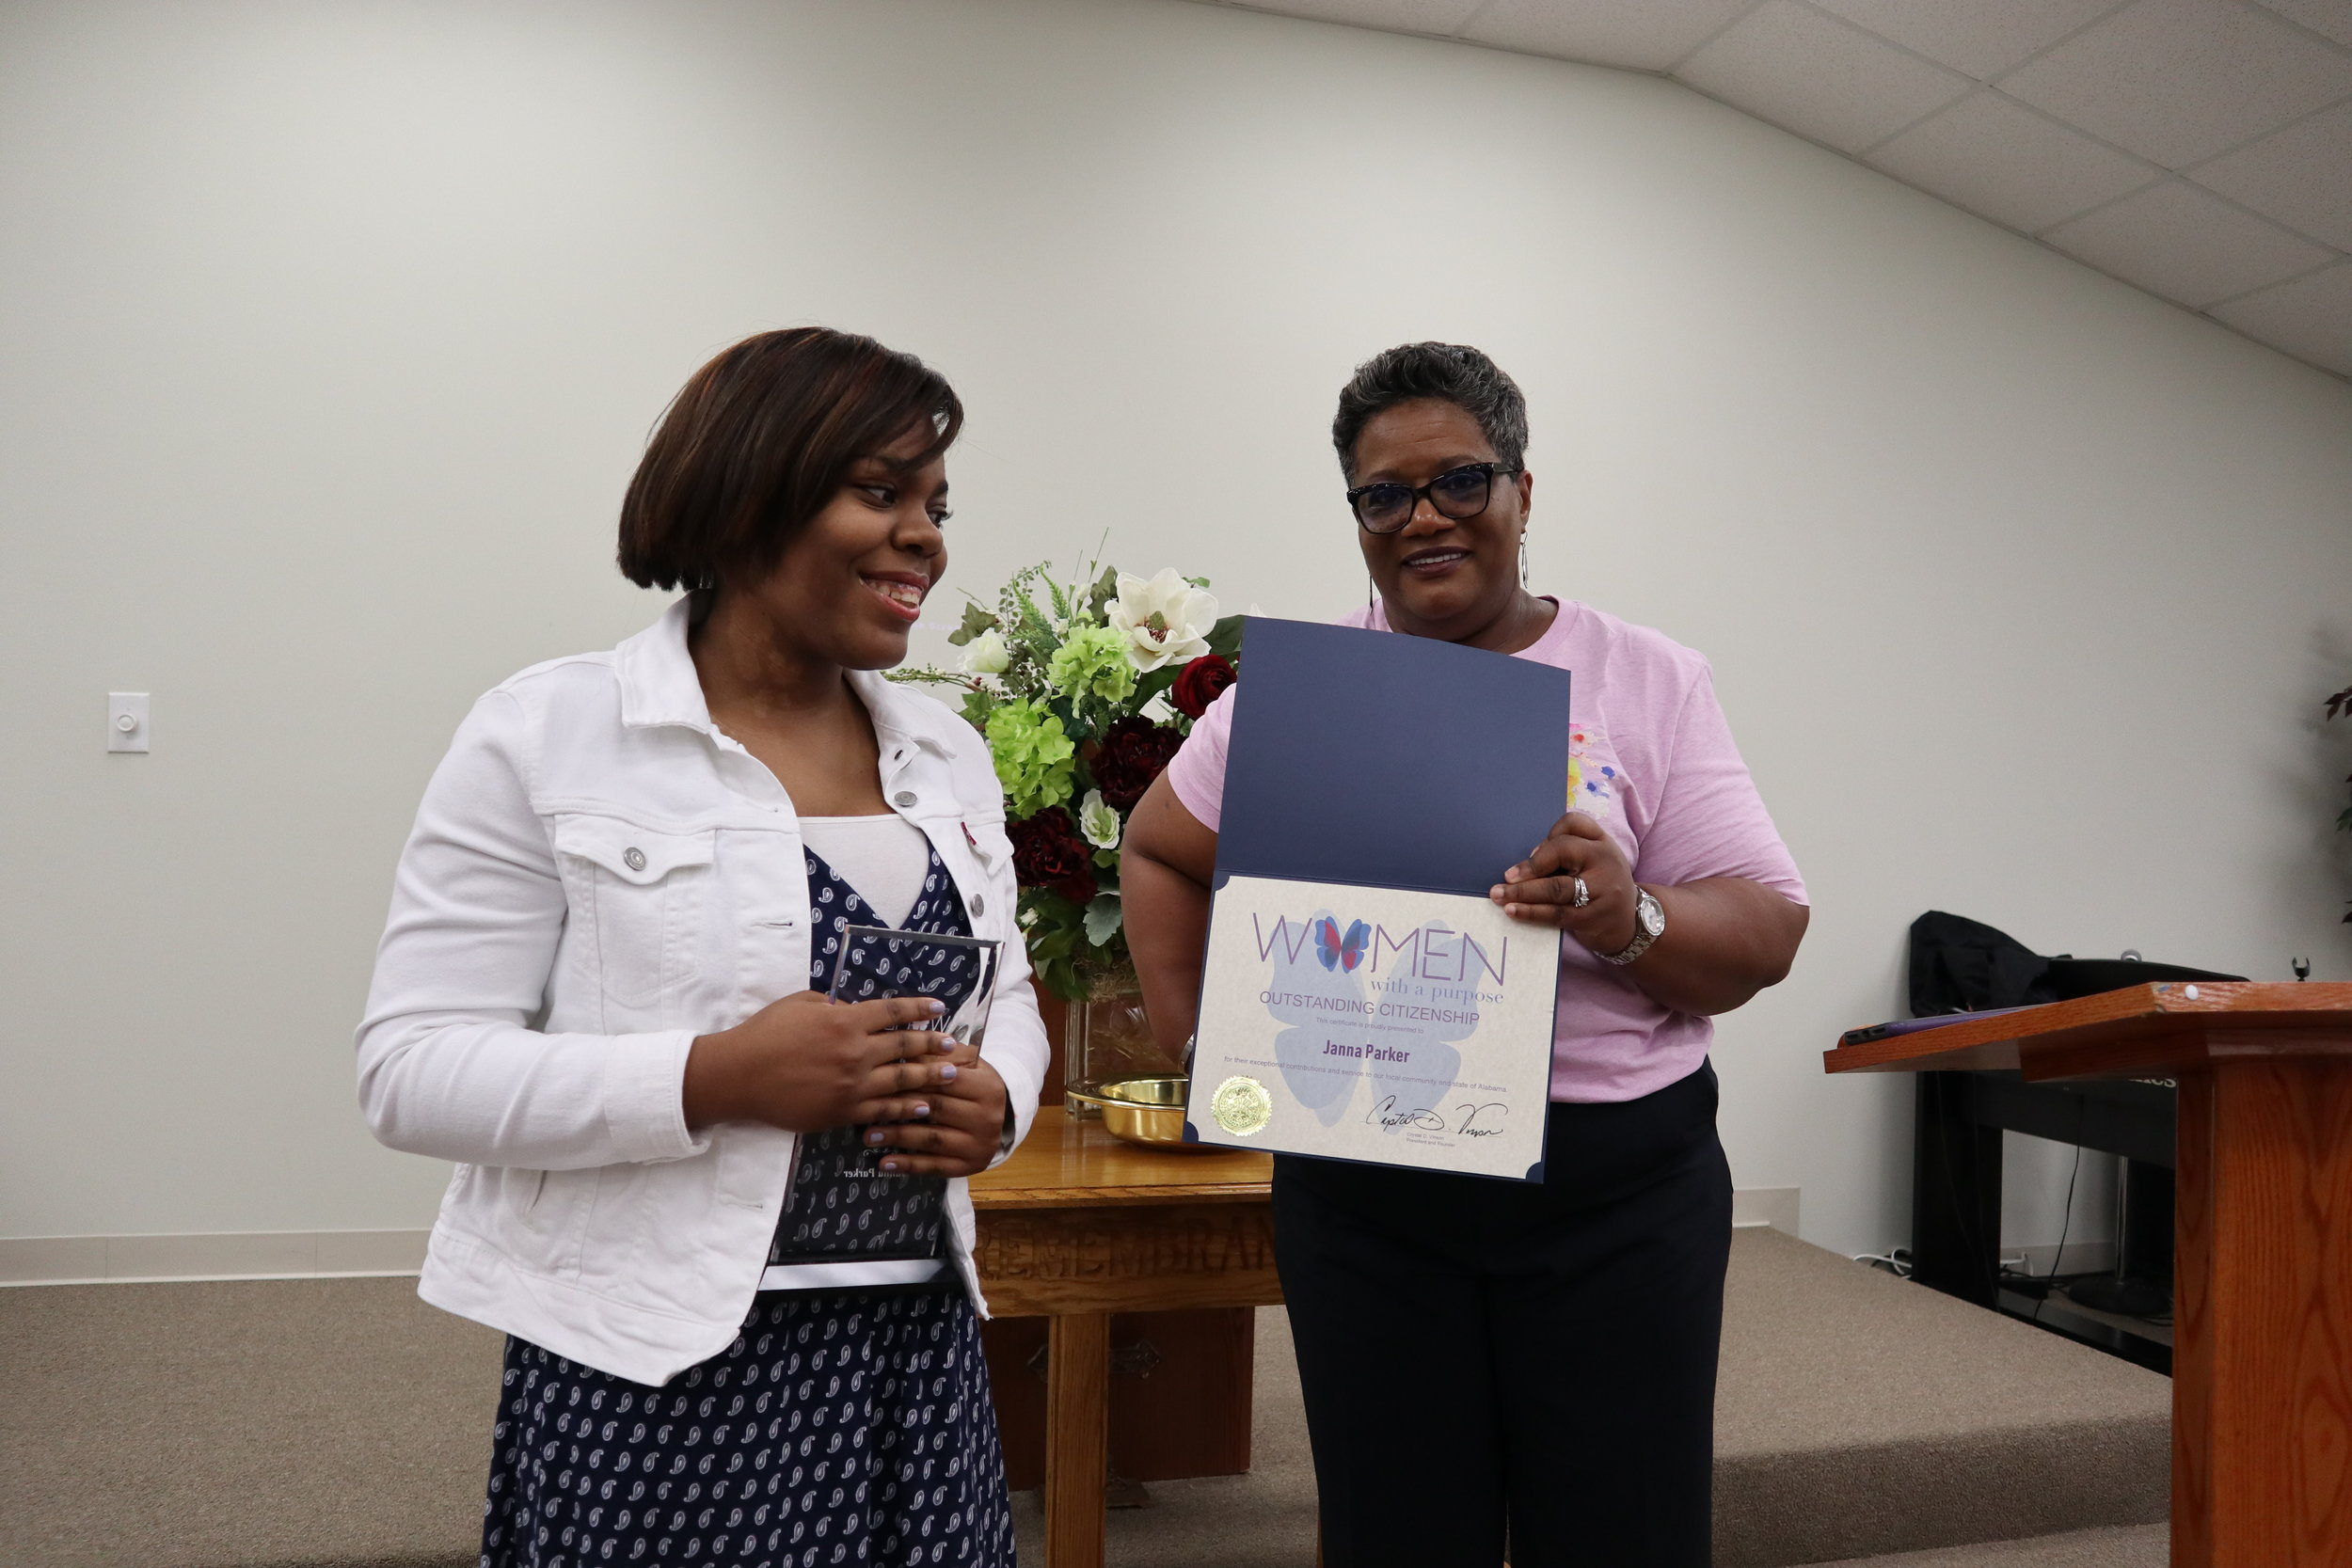 (l to r) Janna Parker, 2019 WWAP Citizenship Award Recipient and Crystal Vinson, WWAP Founder.  The recipient of this award is honored because she makes an impact in the lives of those around her by selflessly using her talent, time, and resources to help them have a better life impacting her community and expecting nothing in return.